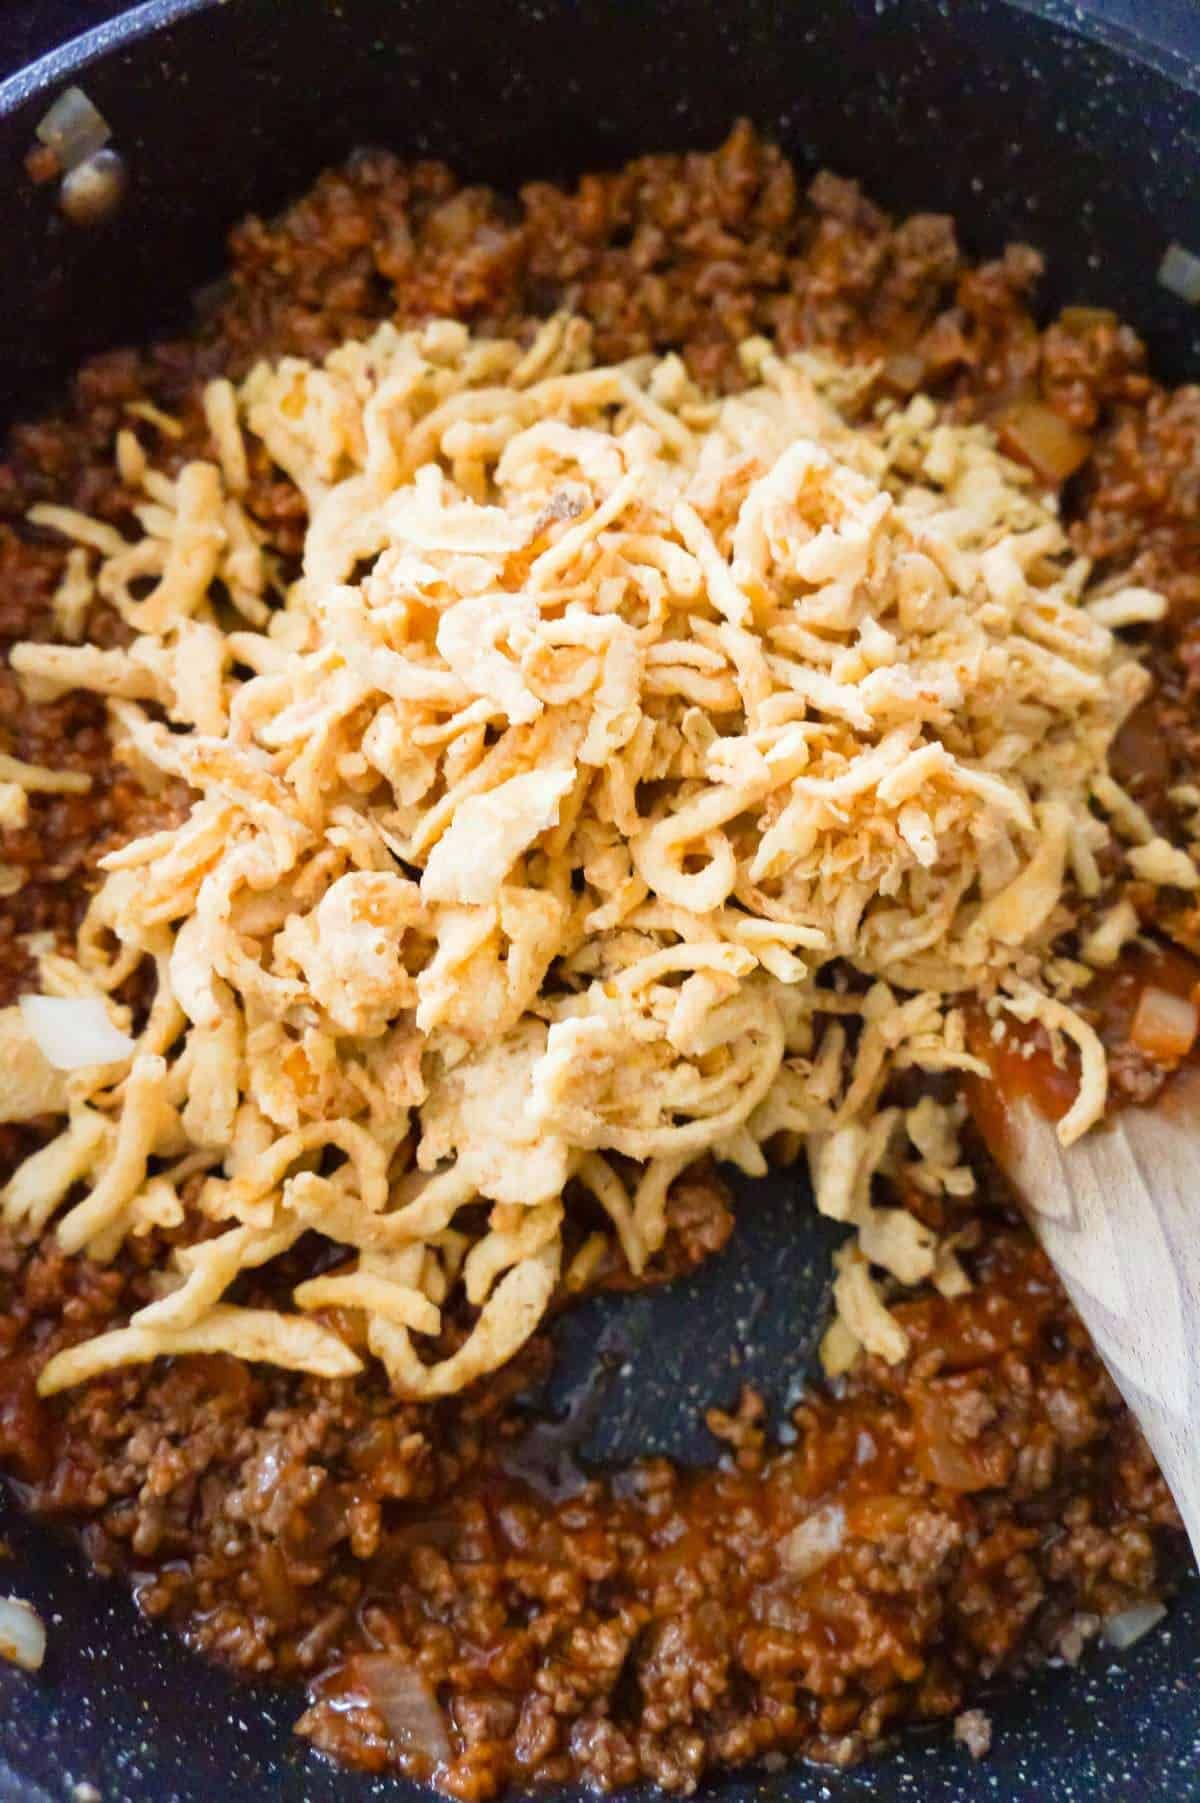 French S Fried Onions On Top Of Sloppy Joe Mixture In A Saute Pan In 2020 Beef Recipes Easy Ground Beef Casserole Recipes Beef Casserole Recipes